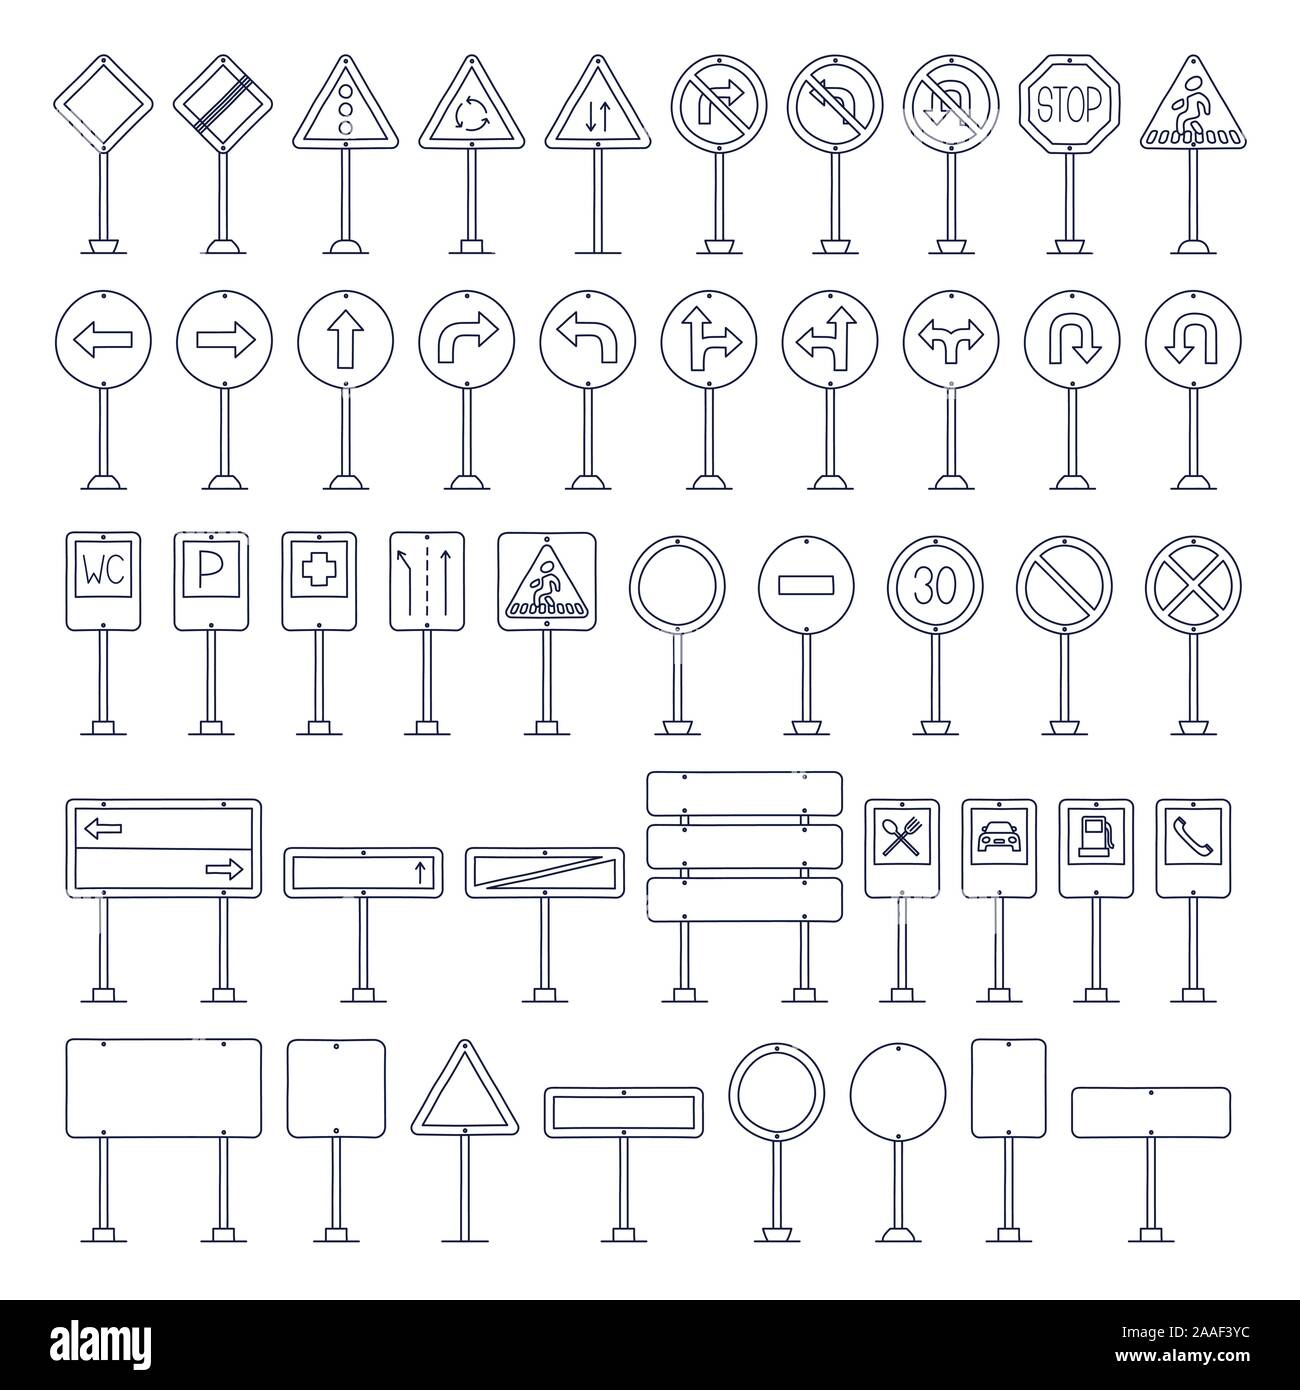 Vector mega set of doodle road signs. Hand-drawn traffic sign icons isolated on white background Stock Vector